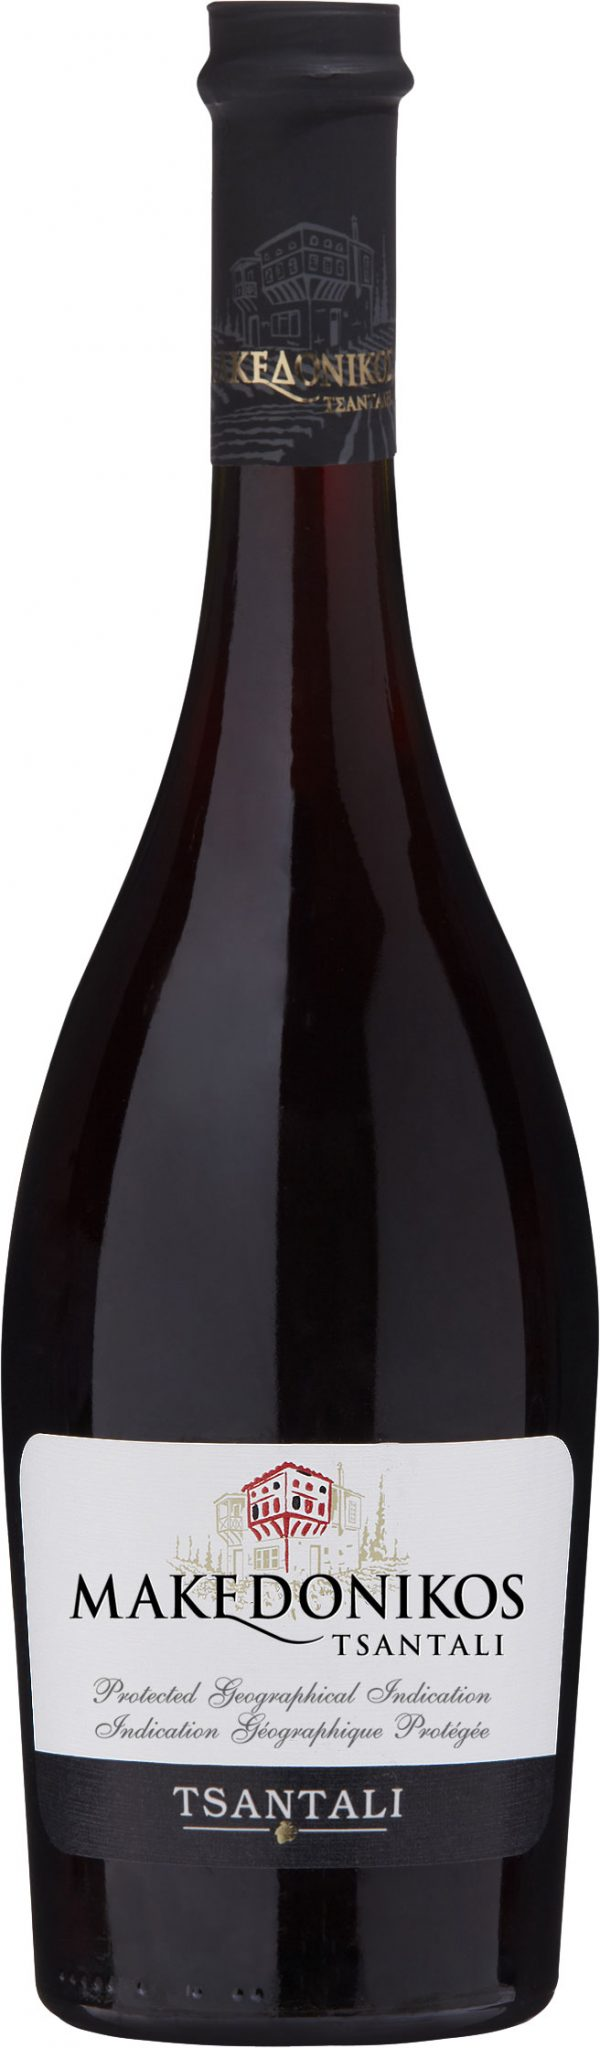 Tsantali - Makedonikos Red 2016 75cl Bottle